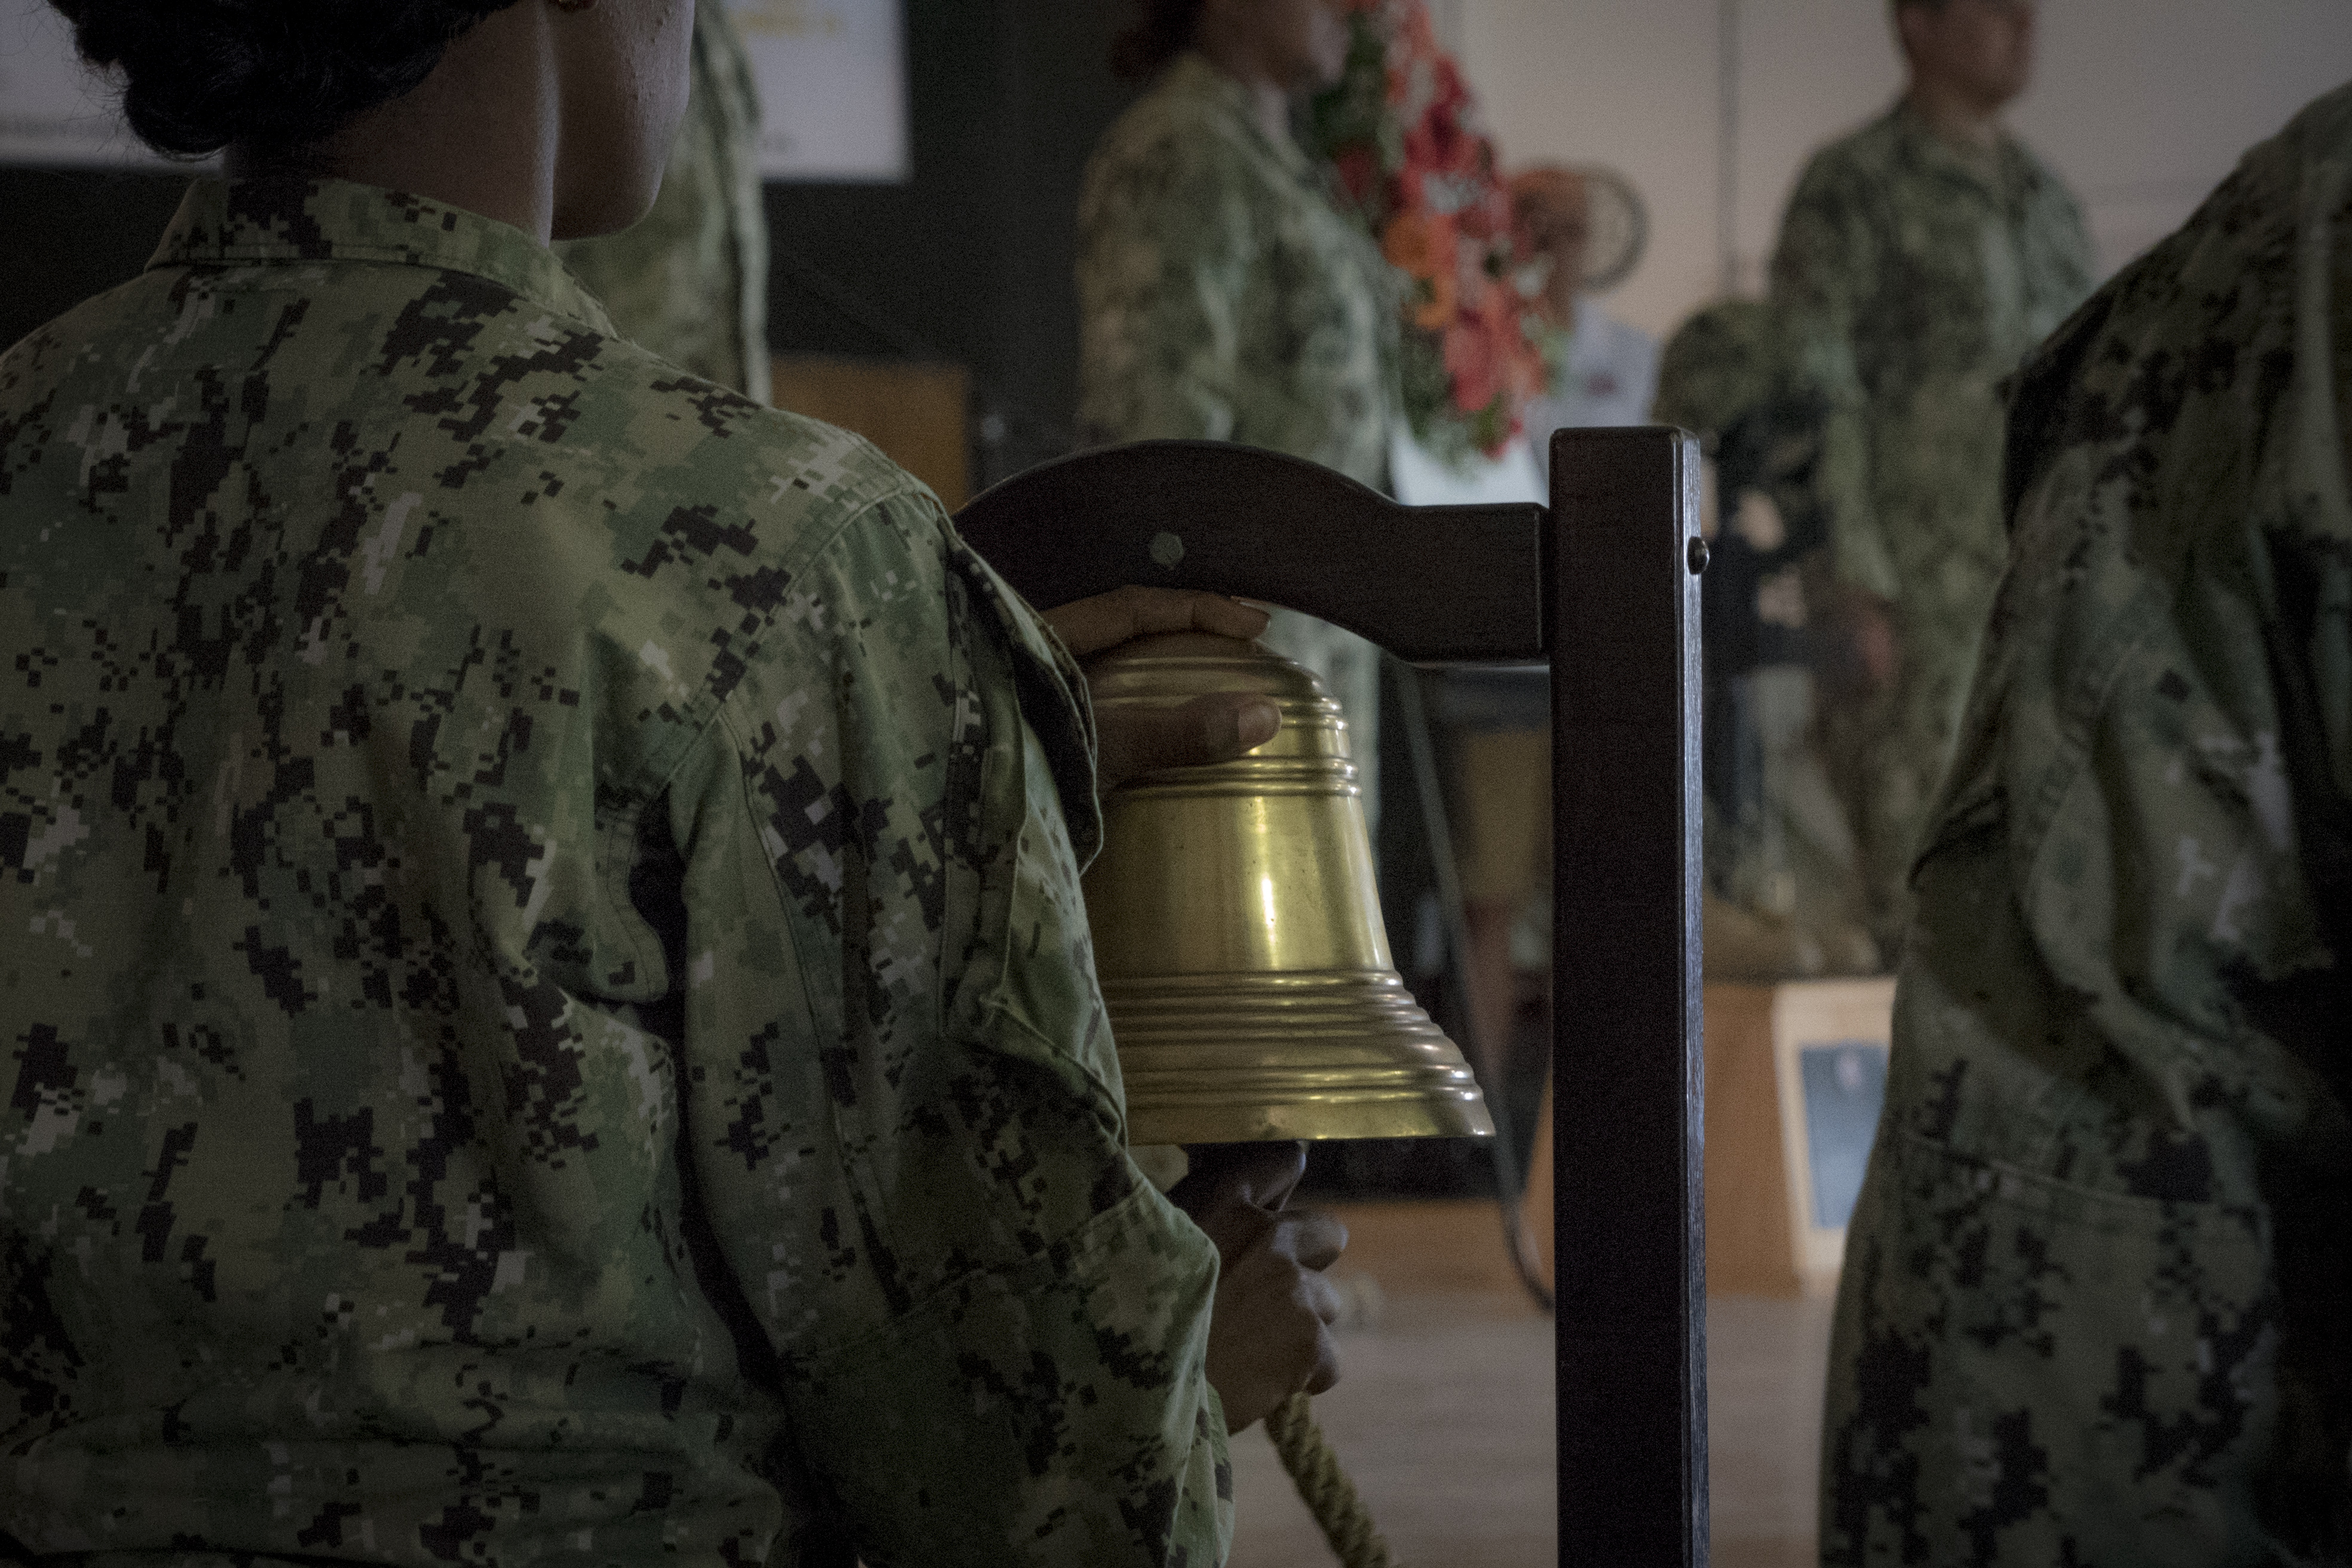 The bell tolls between the names of the fallen as Naval Mobile Construction Battalion One (NMCB-1) of the Combined Joint Task Force-Horn of Africa (CJTF-HOA) Djibouti, are holding a Wreath Laying Memorial Service, May 2, 2017, at Camp Lemonnier, Djibouti. The ceremony is honoring seven Navy Seabees who gave their lives while serving NMCB-14 during Operation Iraqi Freedom on May 2, 2004. In honor of these courageous Seabees and all service members who have made the ultimate sacrifice, the memorial honors and keeps their memories alive. (U.S. Air National Guard photo by Tech. Sgt. Joe Harwood)